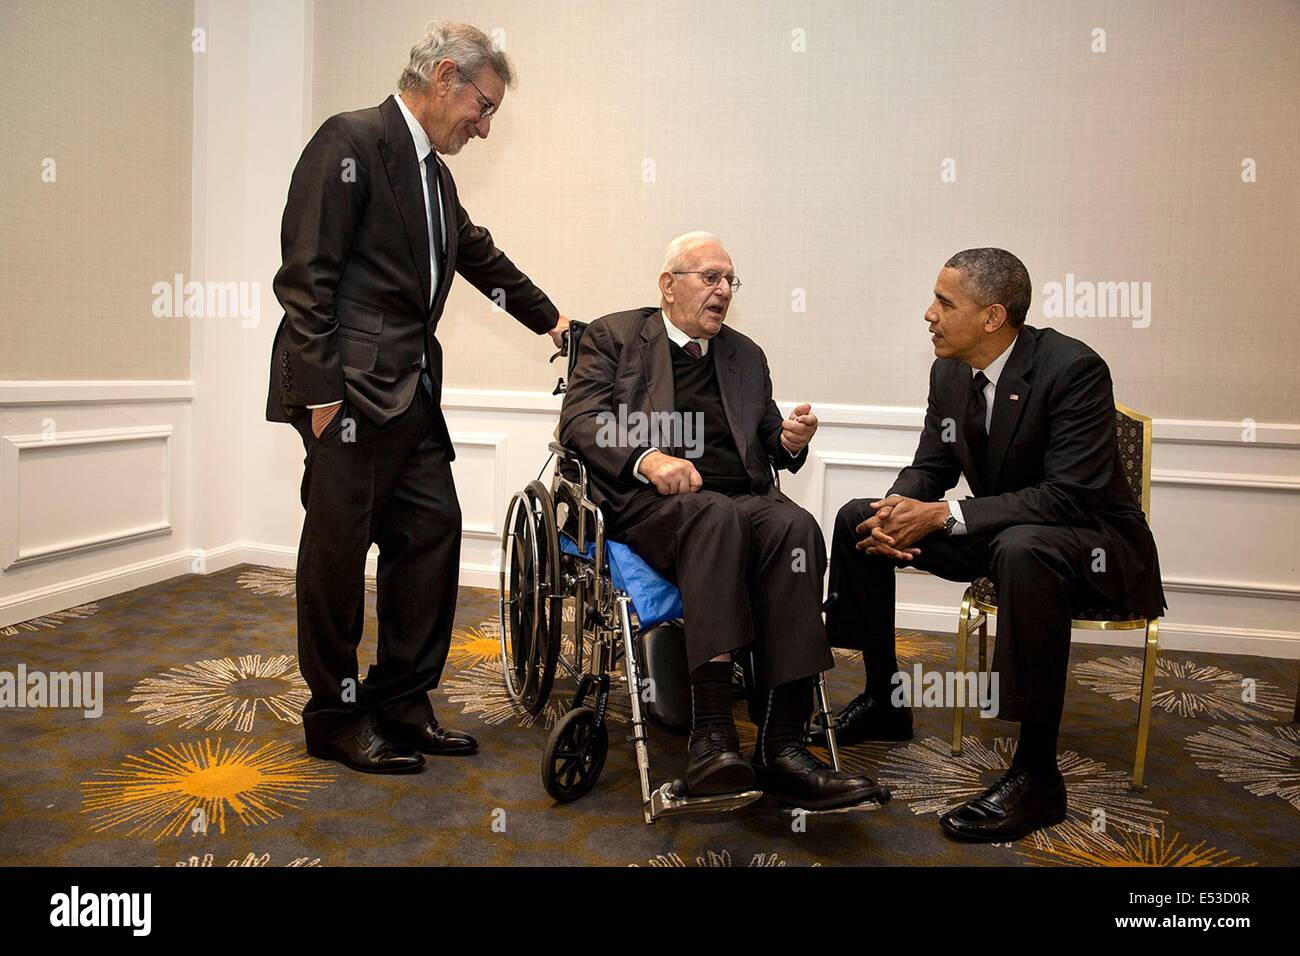 US President Barack Obama visits with Steven Spielberg and his father Arnold Spielberg May 7, 2014 in Los Angeles, - Stock Image